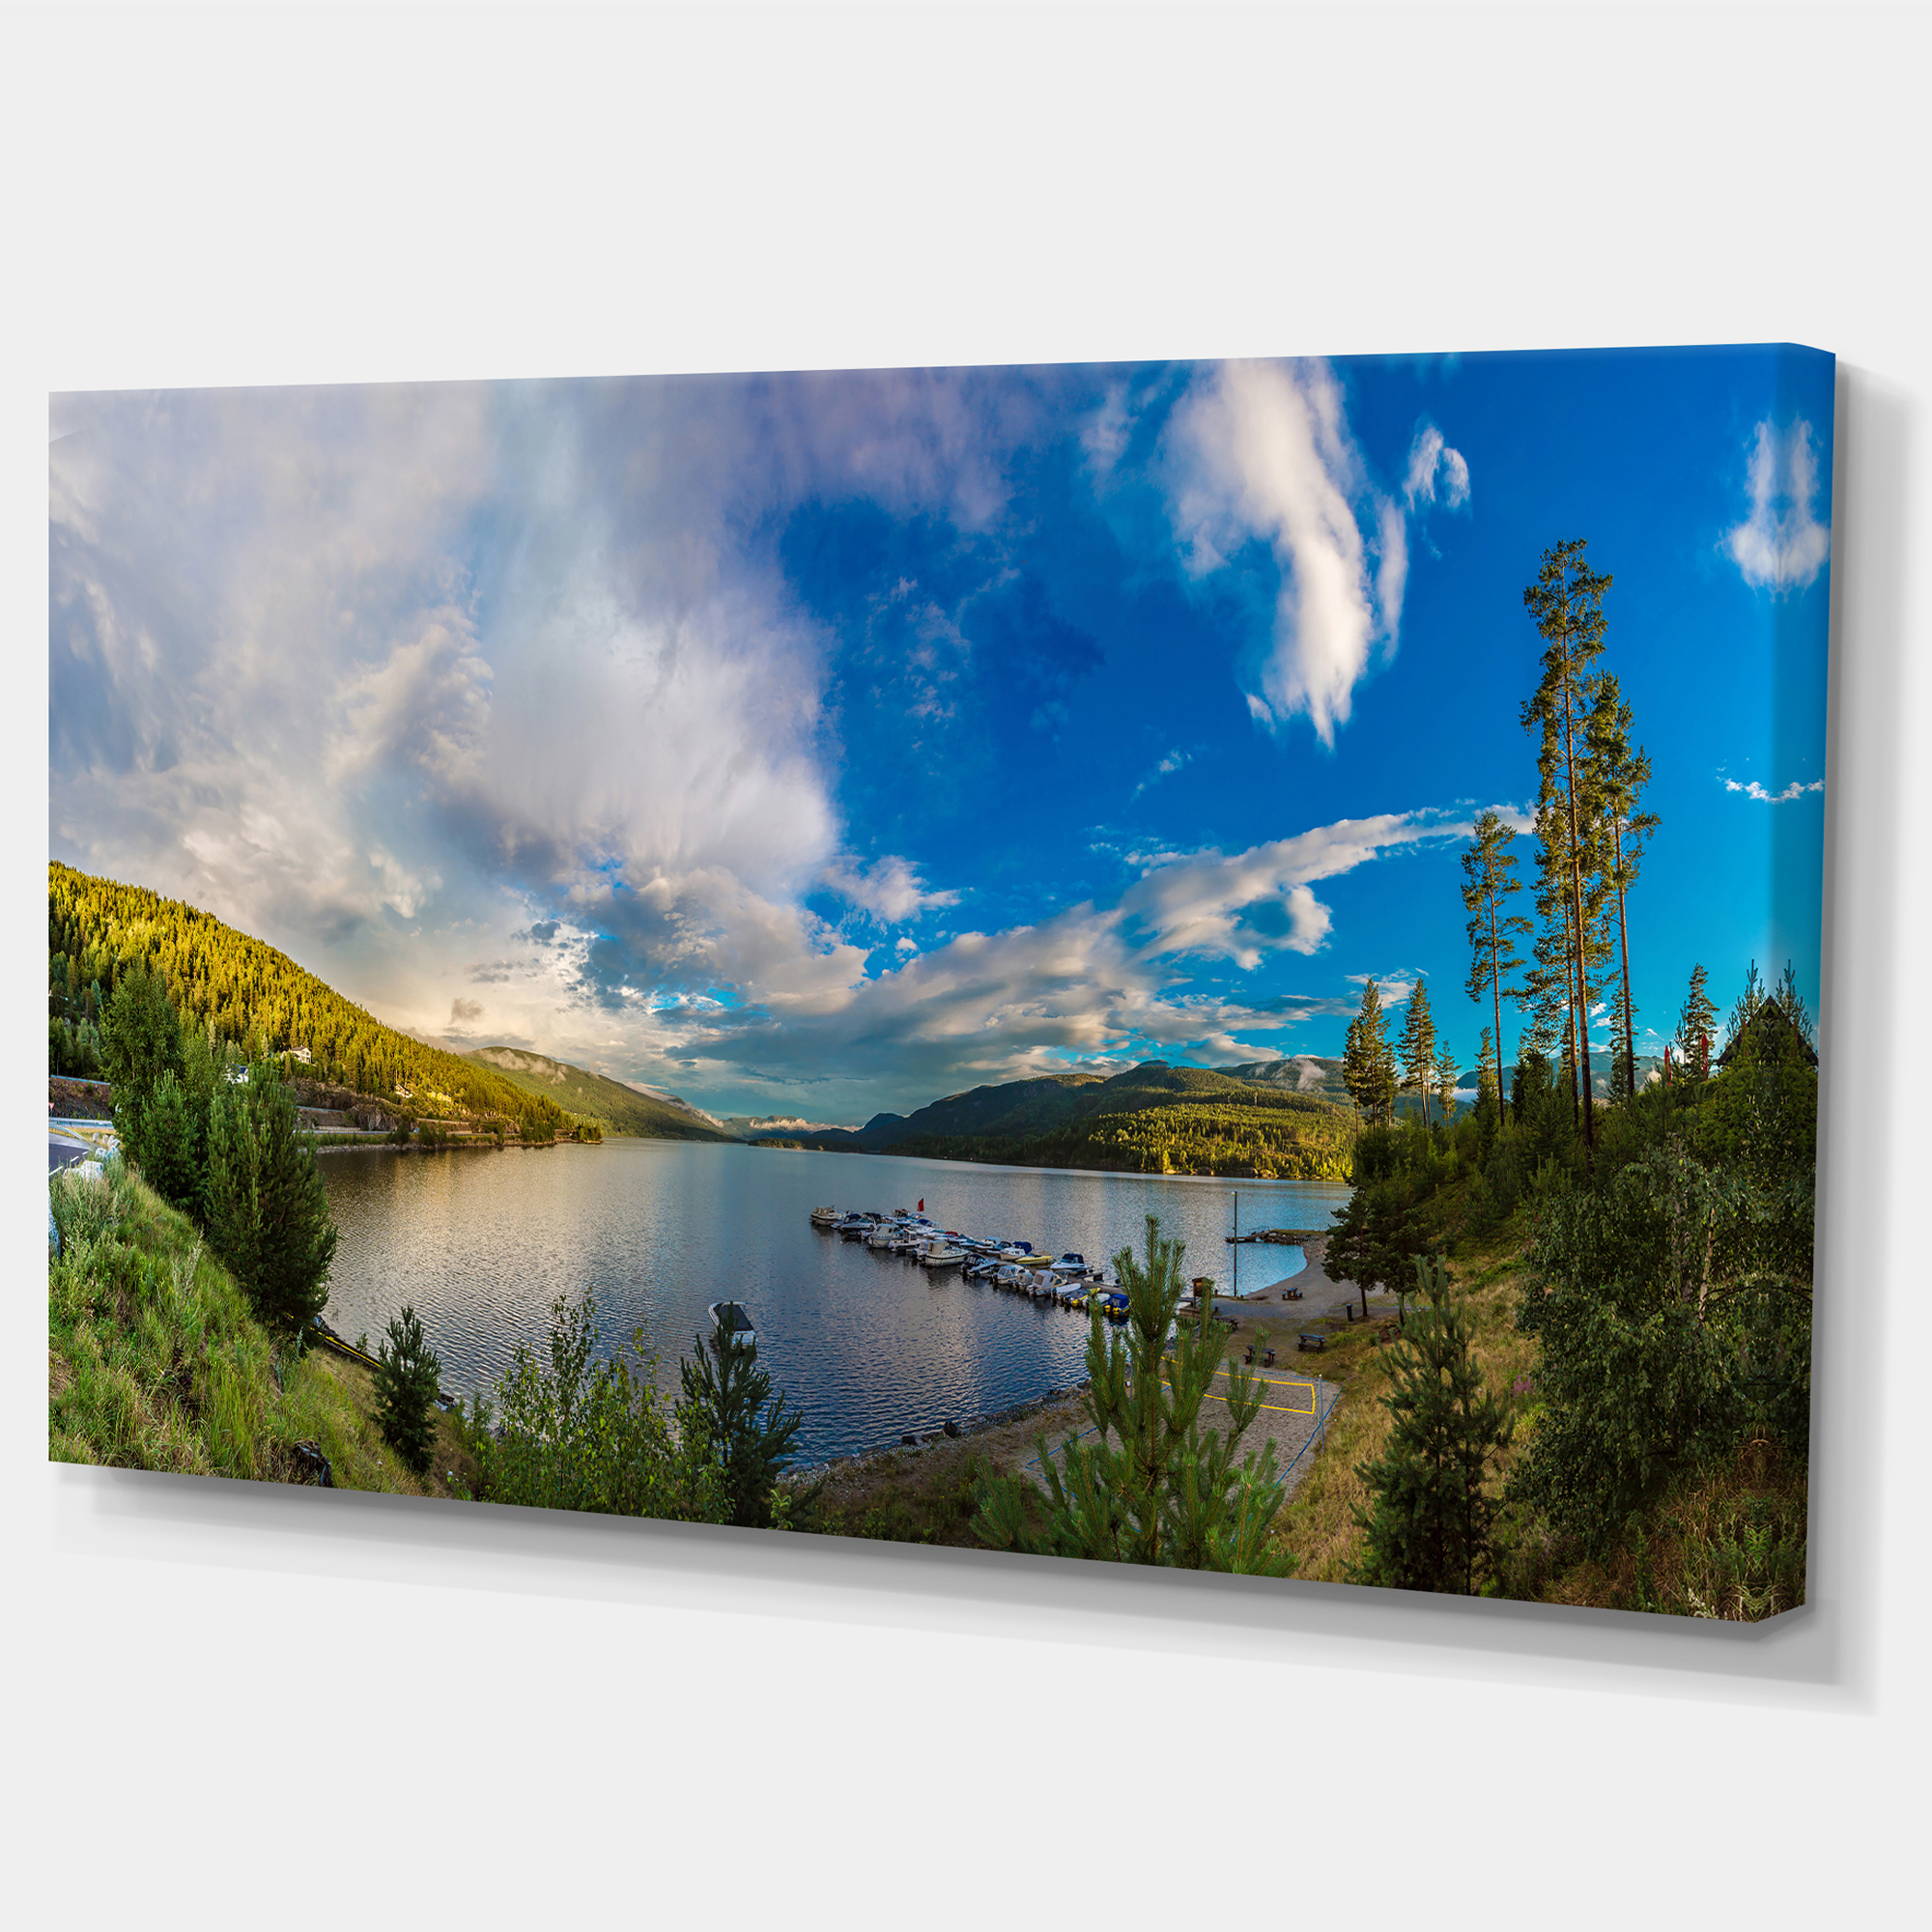 Sognefjord in Norway Panorama - Landscape Canvas Art Print - image 2 de 4